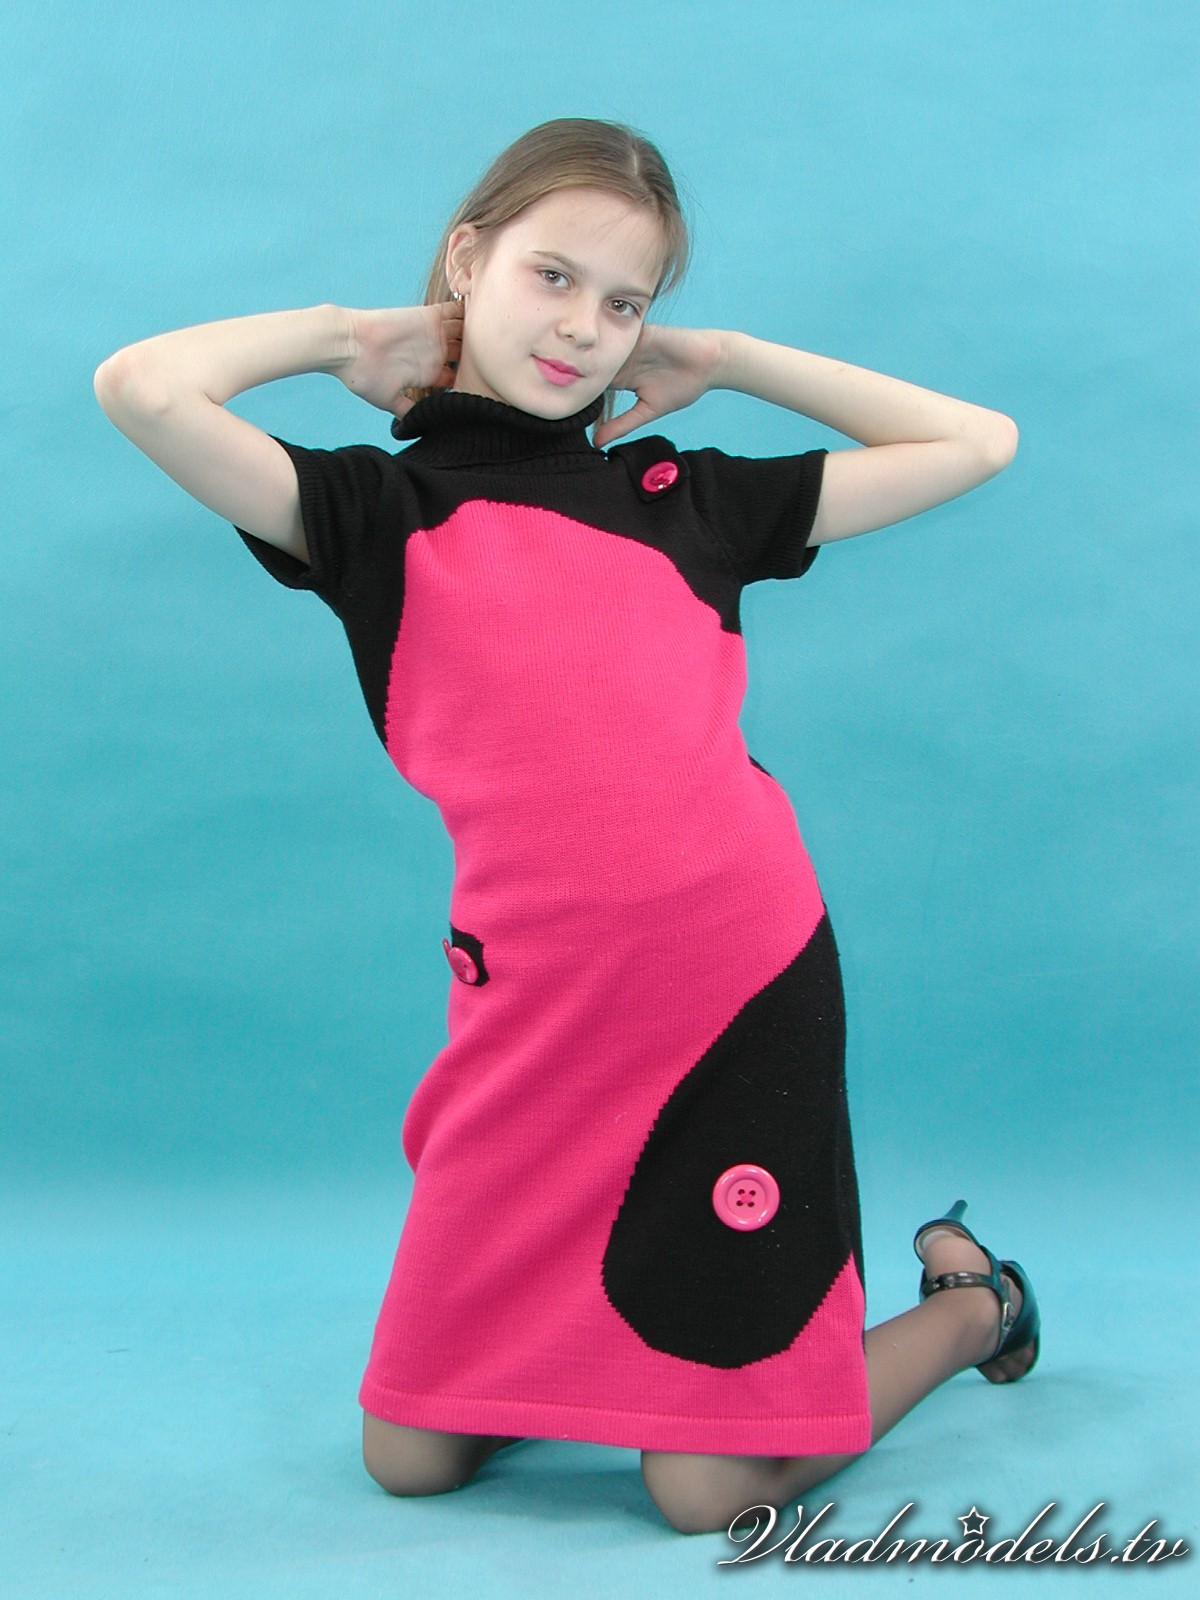 vladmodels: Child And Preteen Russian Models